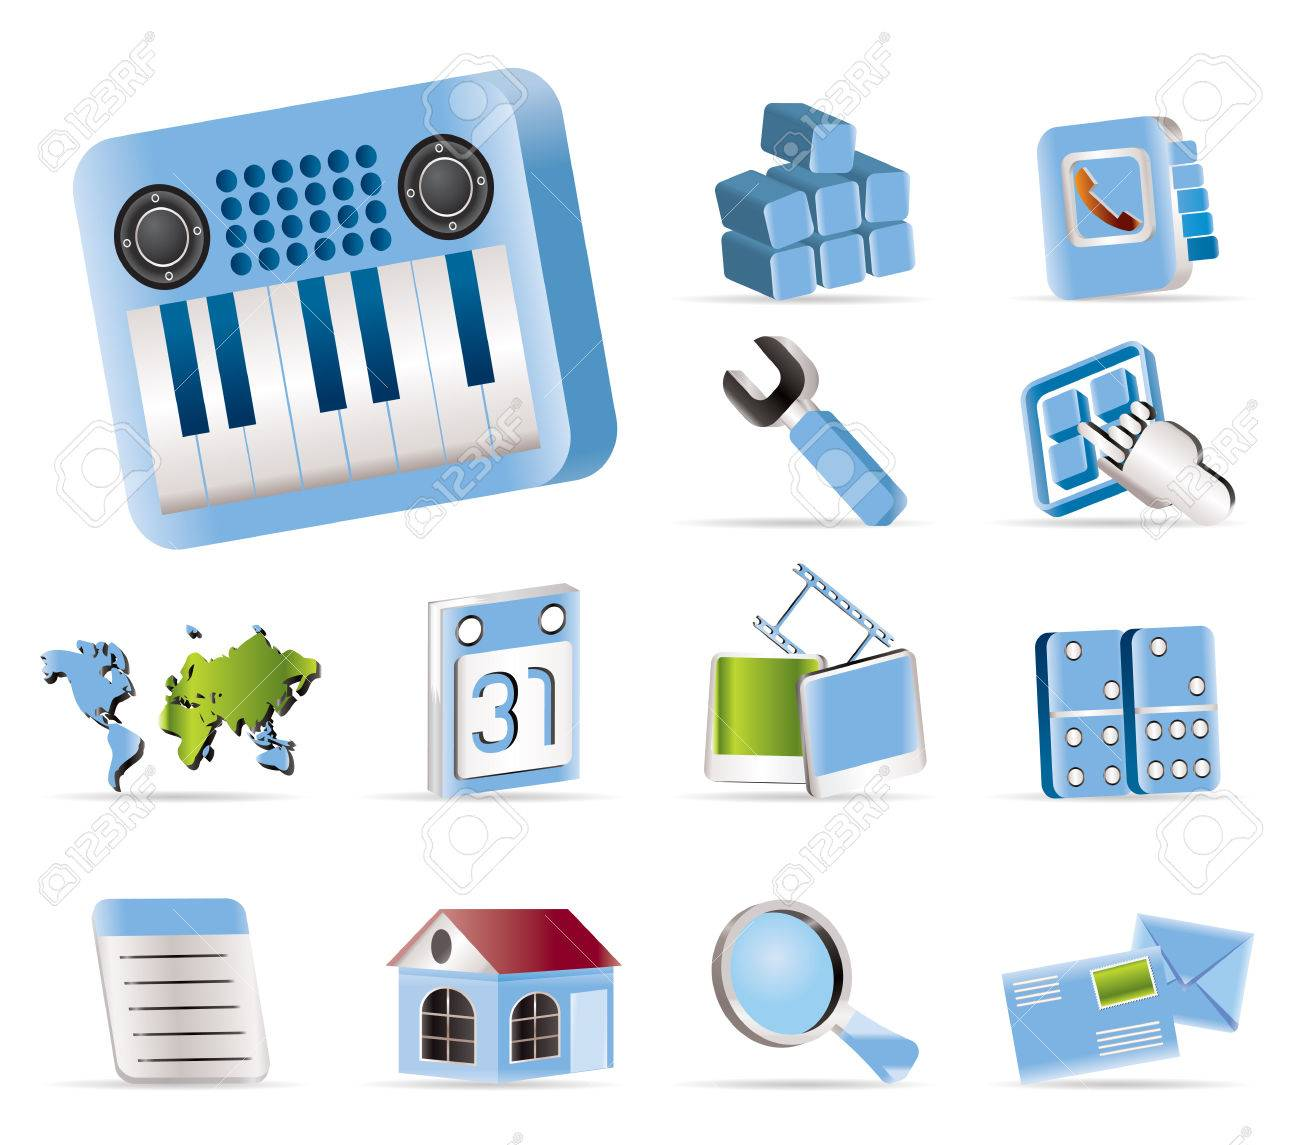 Realistic Mobile Phone and Computer icon - Vector Icon Set Stock Vector - 5454677